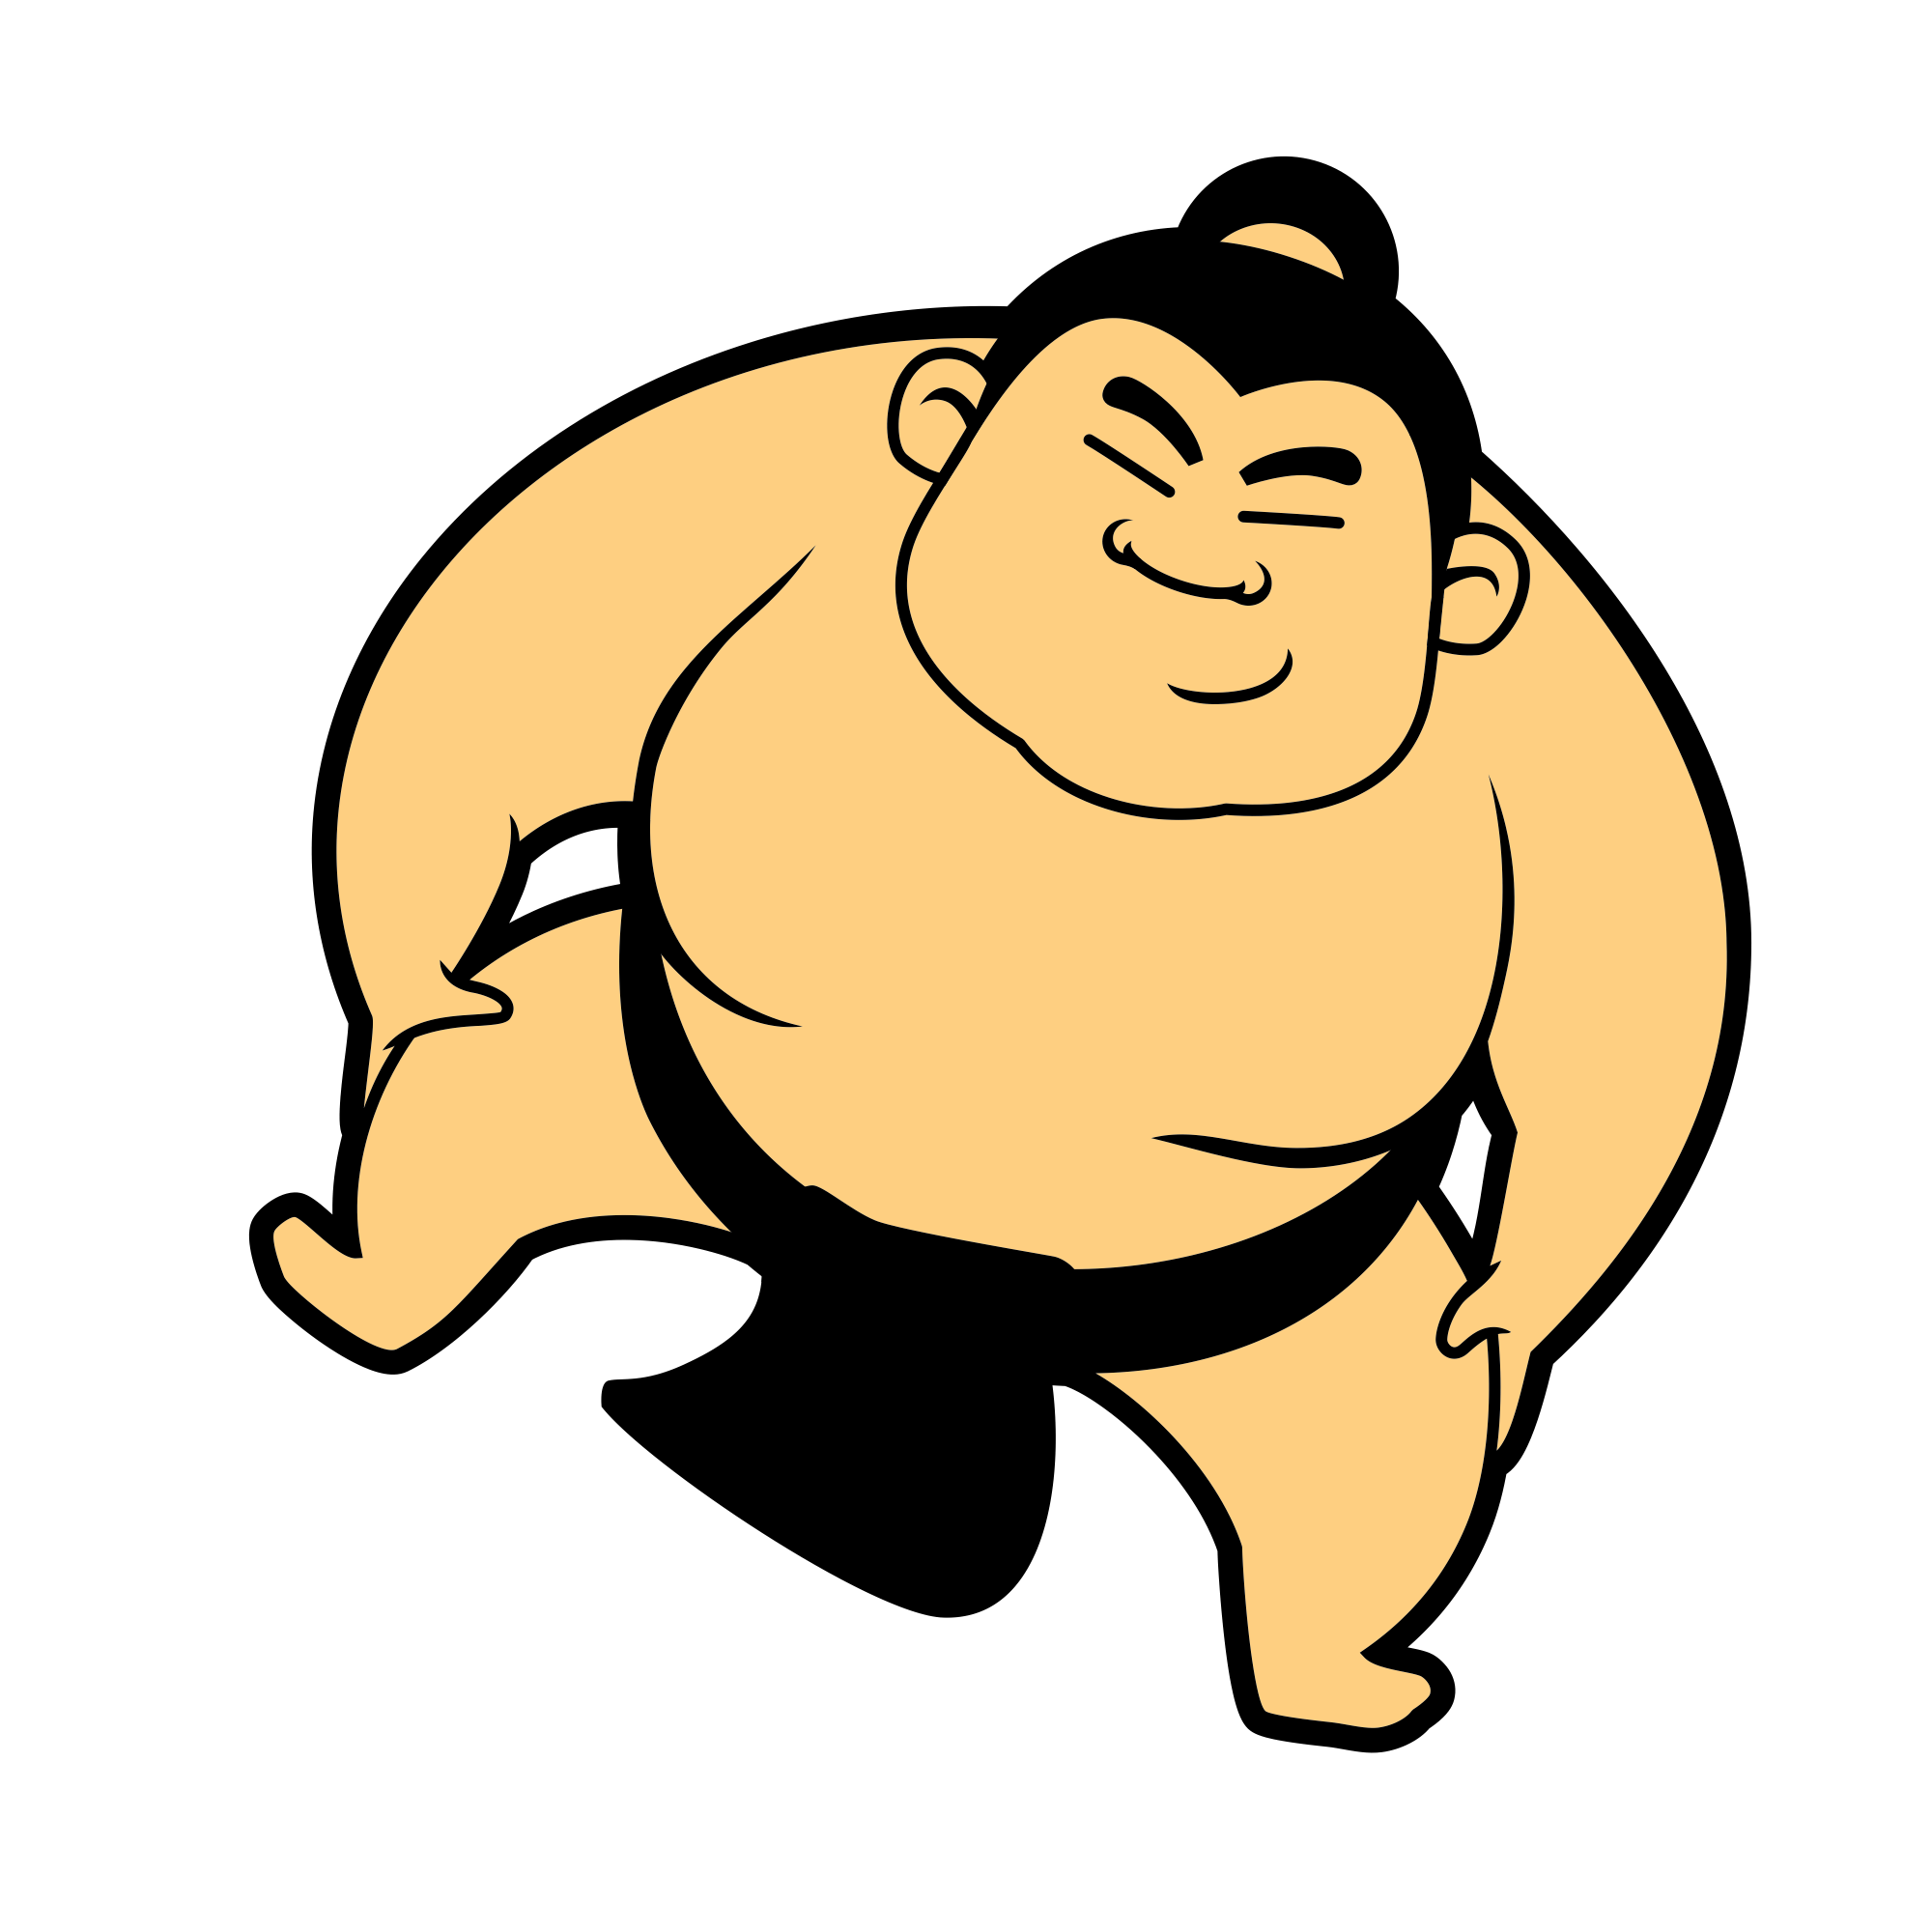 Wrestlers squaring off clipart graphic free stock Sphero Sumo Wrestling graphic free stock